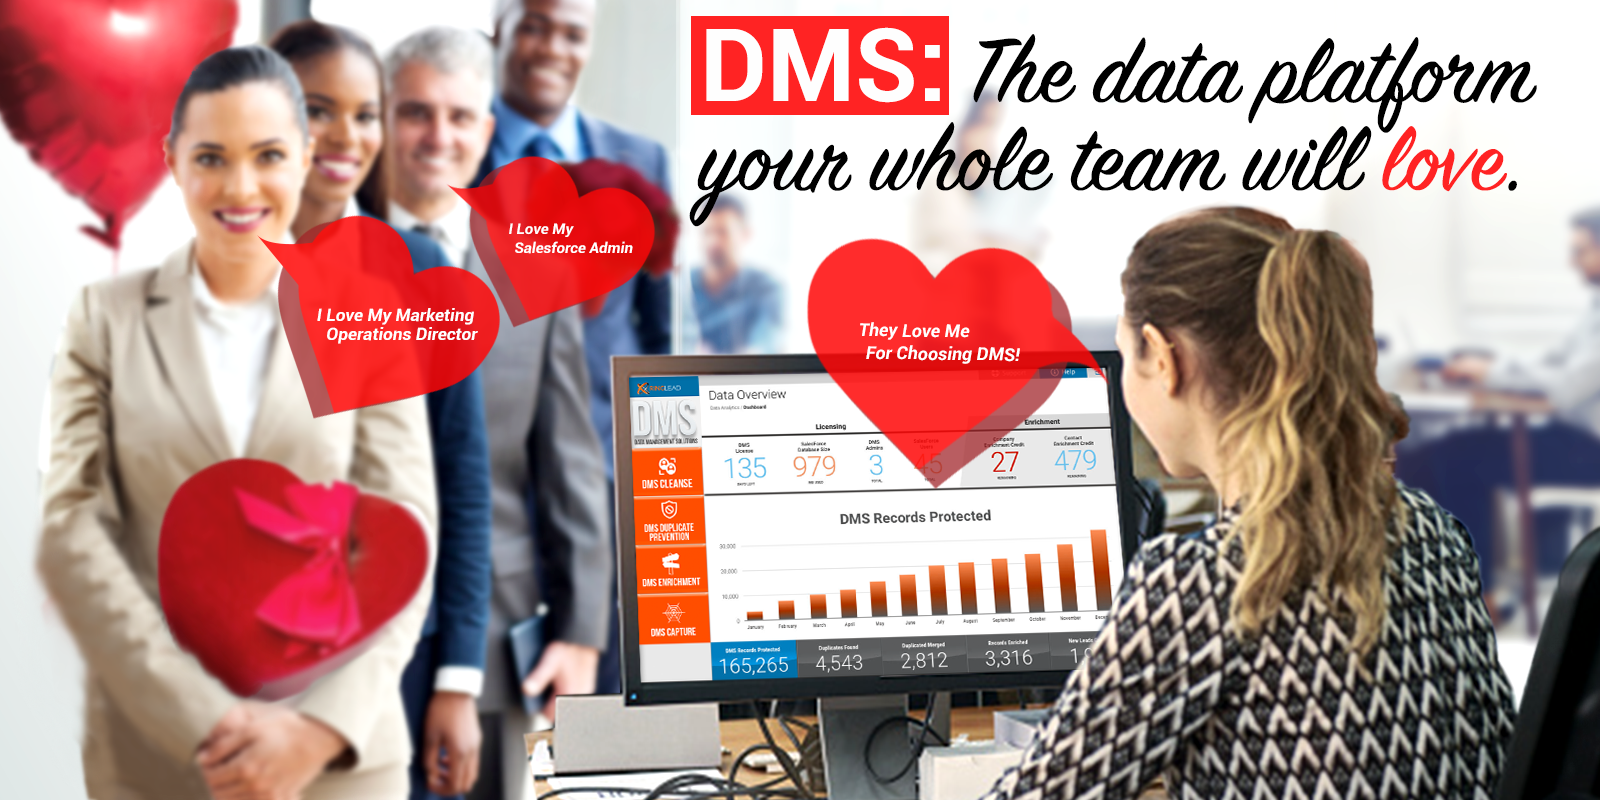 DMS: The Data Platform Your Whole Team Will Love!